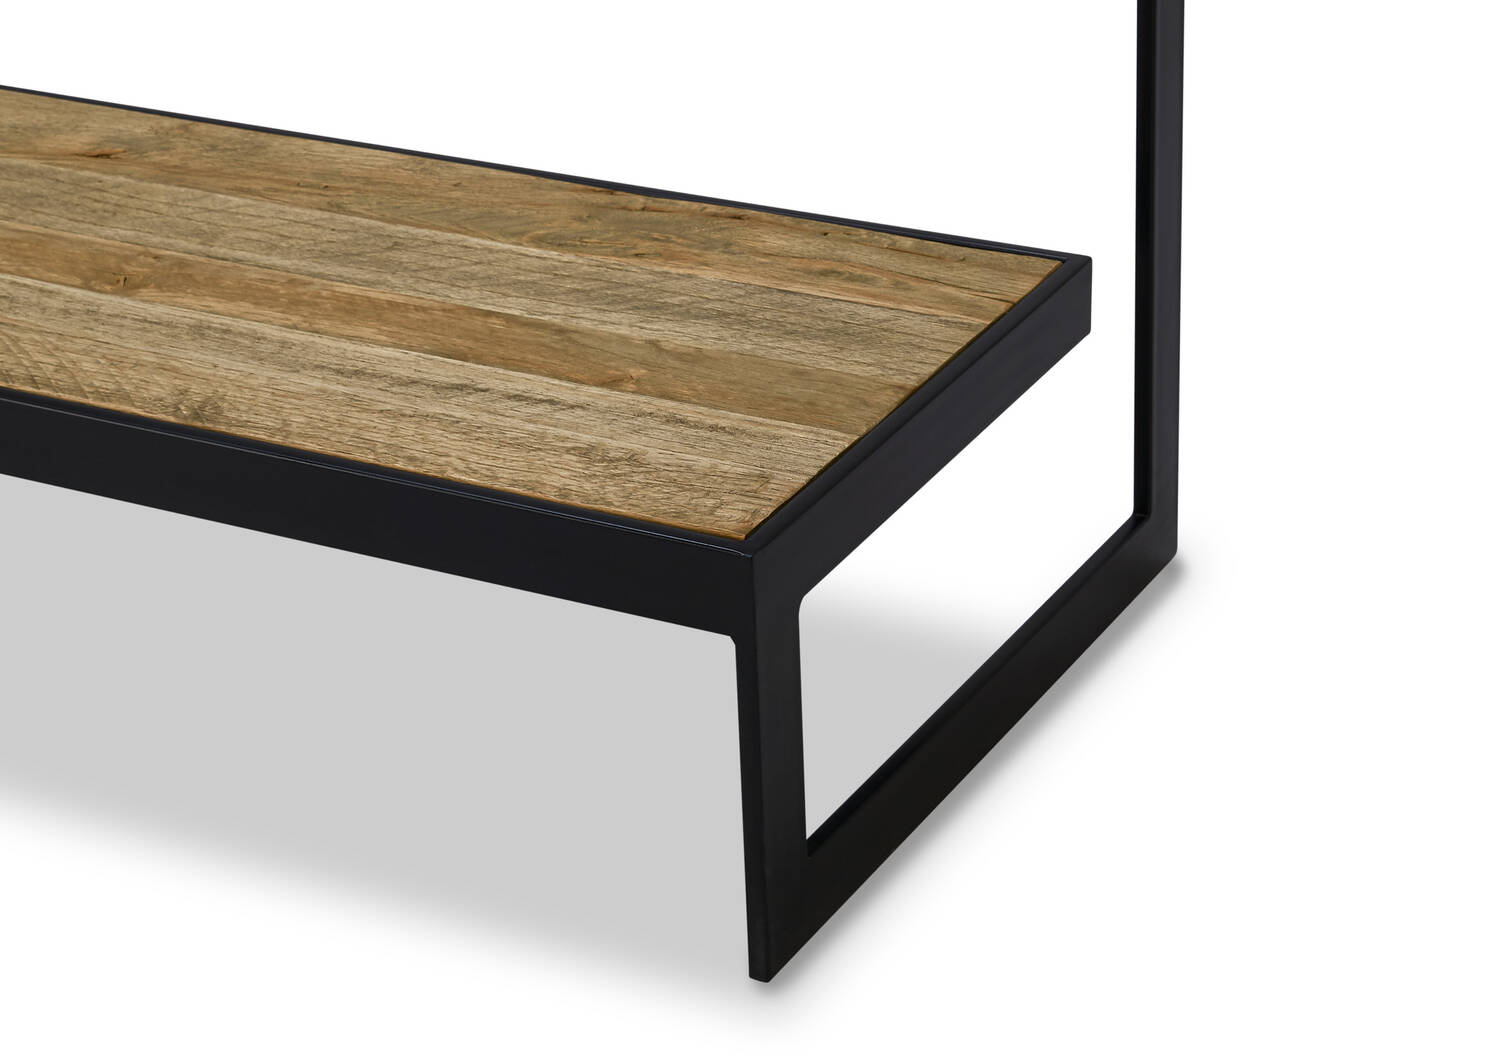 Mitchell Console Table -Aspen Oak